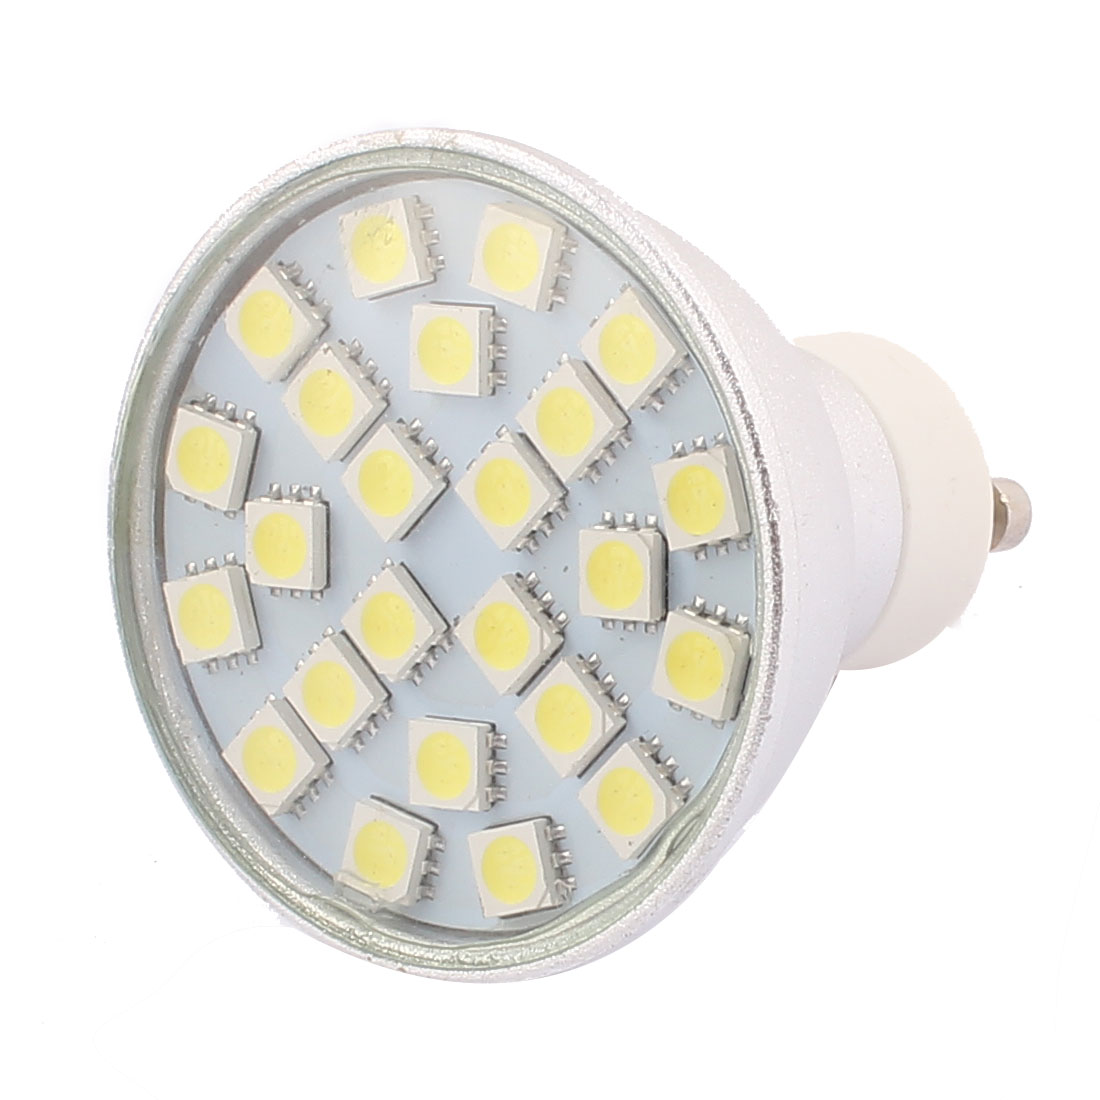 GU10 SMD5050 24LEDs Aluminum Energy Saving LED Lamp Bulb White AC 220V~240V 3W